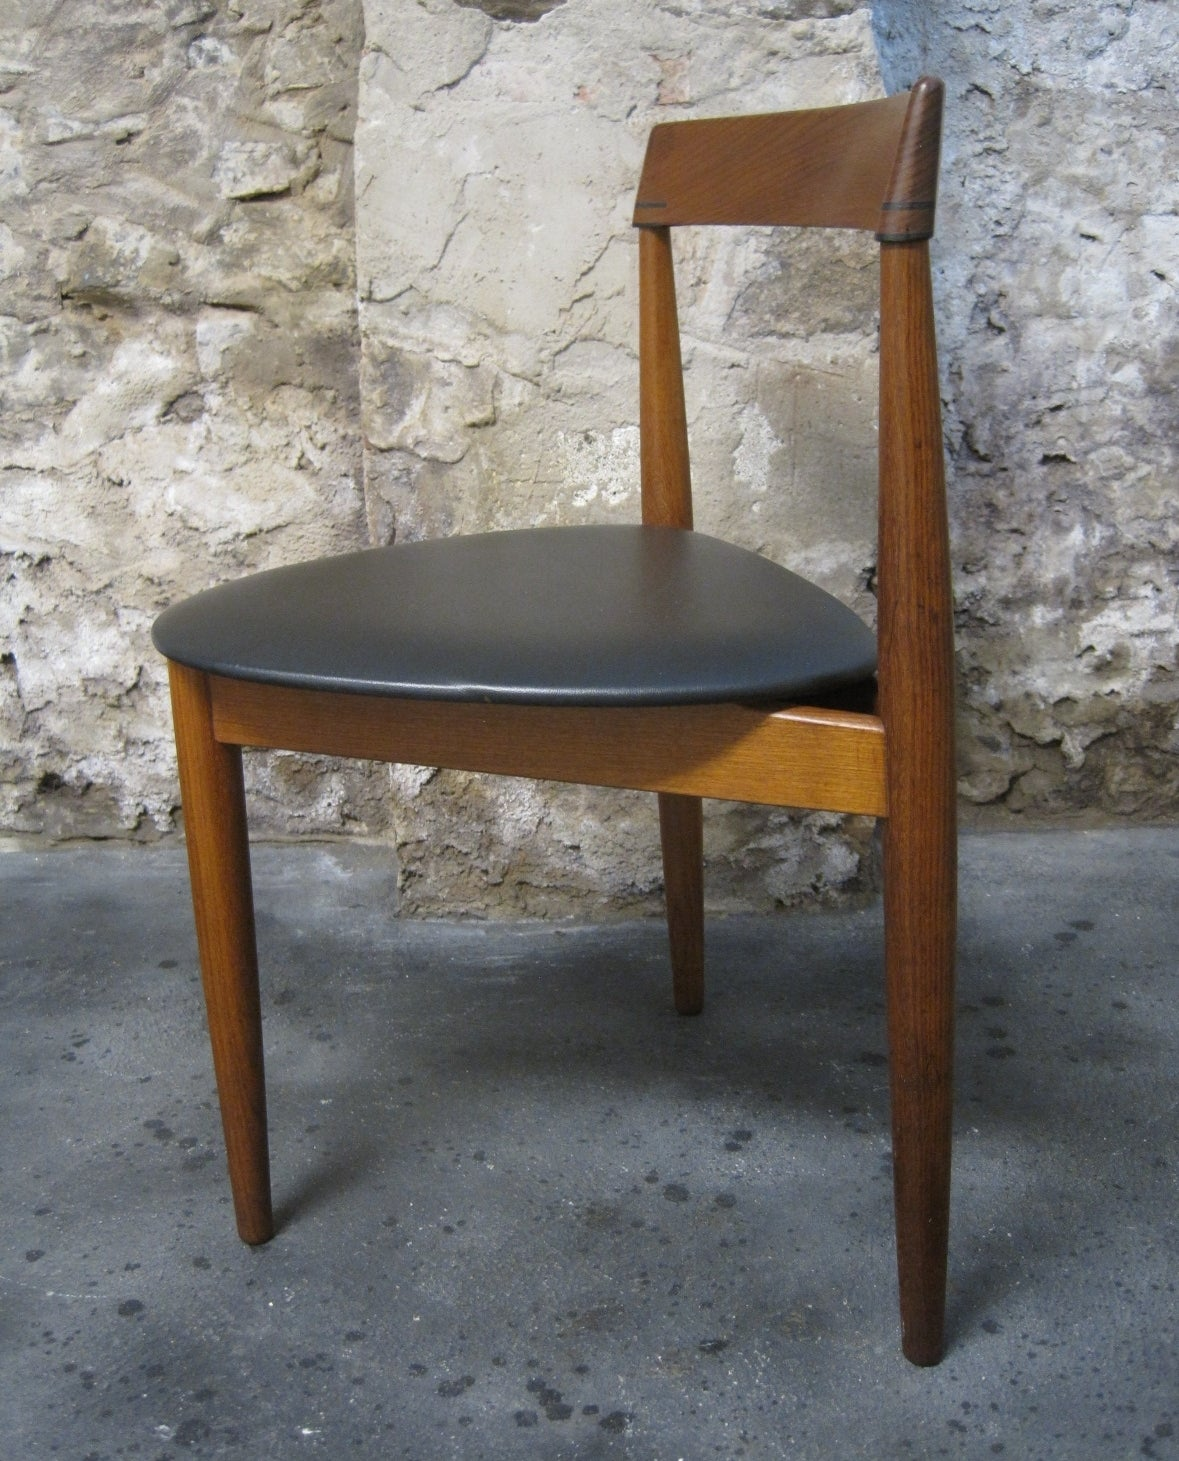 Teak Dining Table And Chairs: Hans Olsen For Frem Rojle Teak Dining Table And Chairs